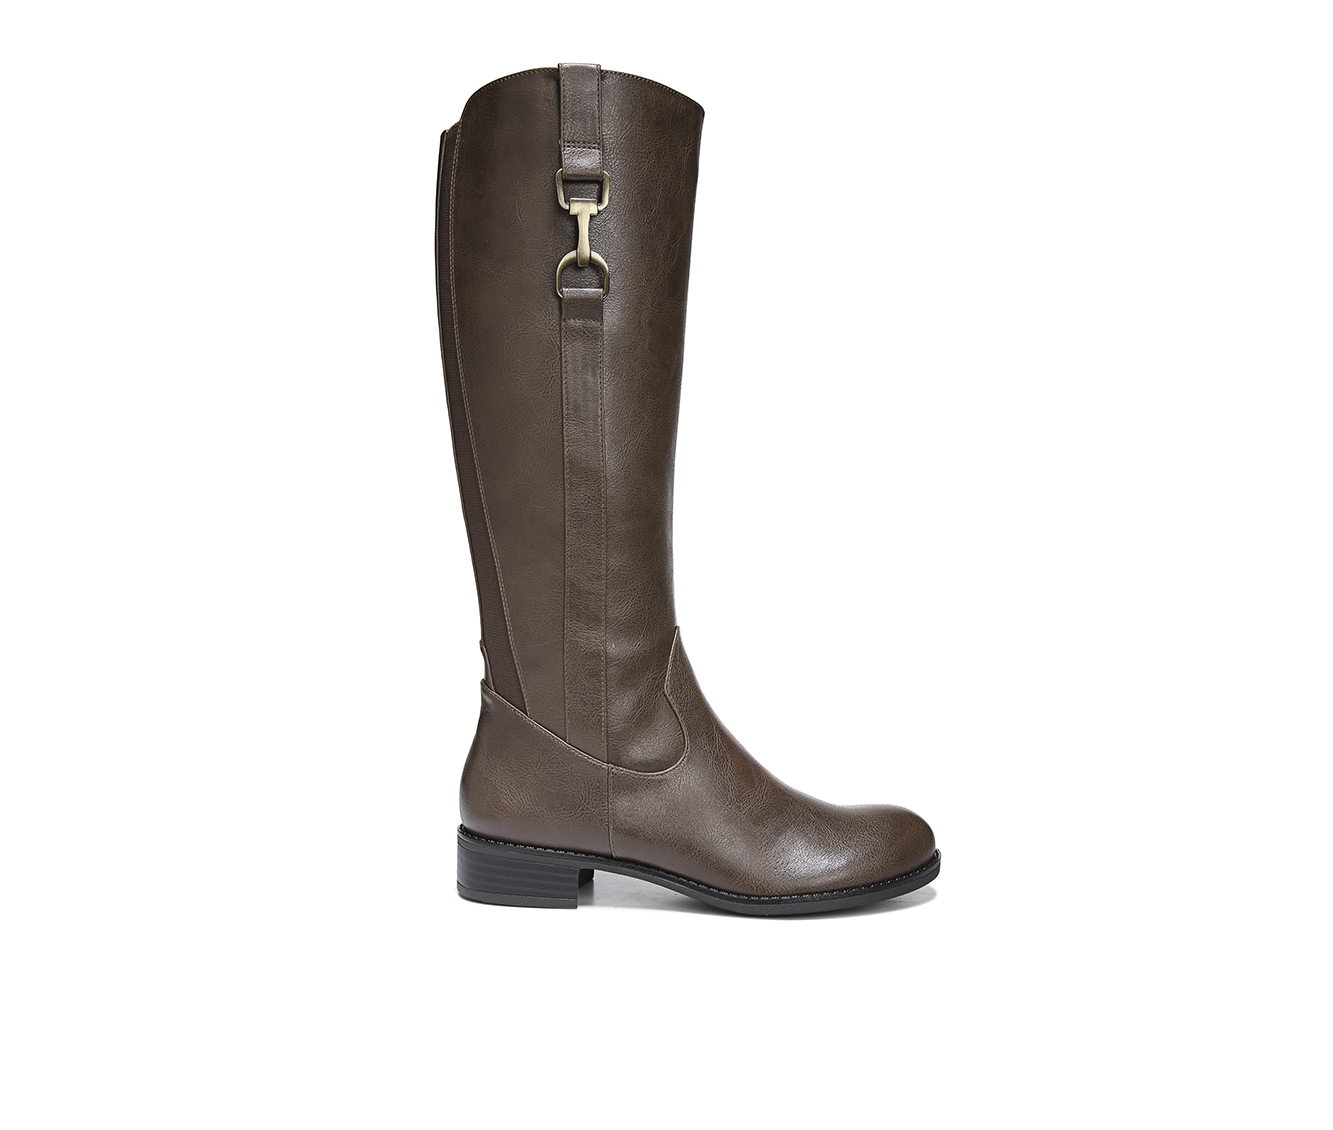 LifeStride Stormy Women's Boots (Black - Faux Leather)